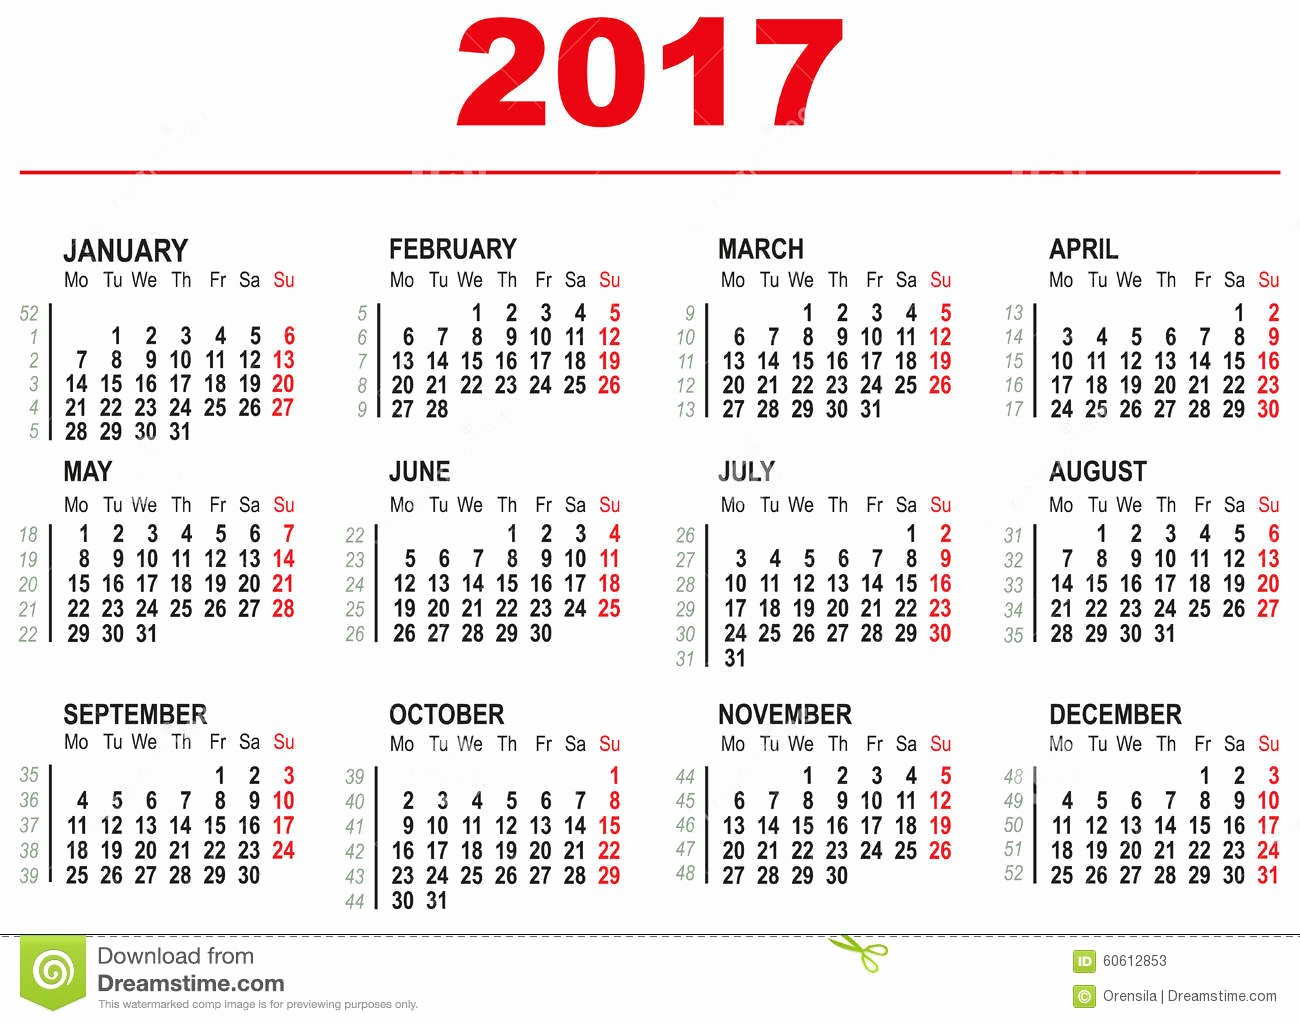 Days Of the Week Horizontal Best Of 2017 Calendar Template Horizontal Weeks First Day Monday